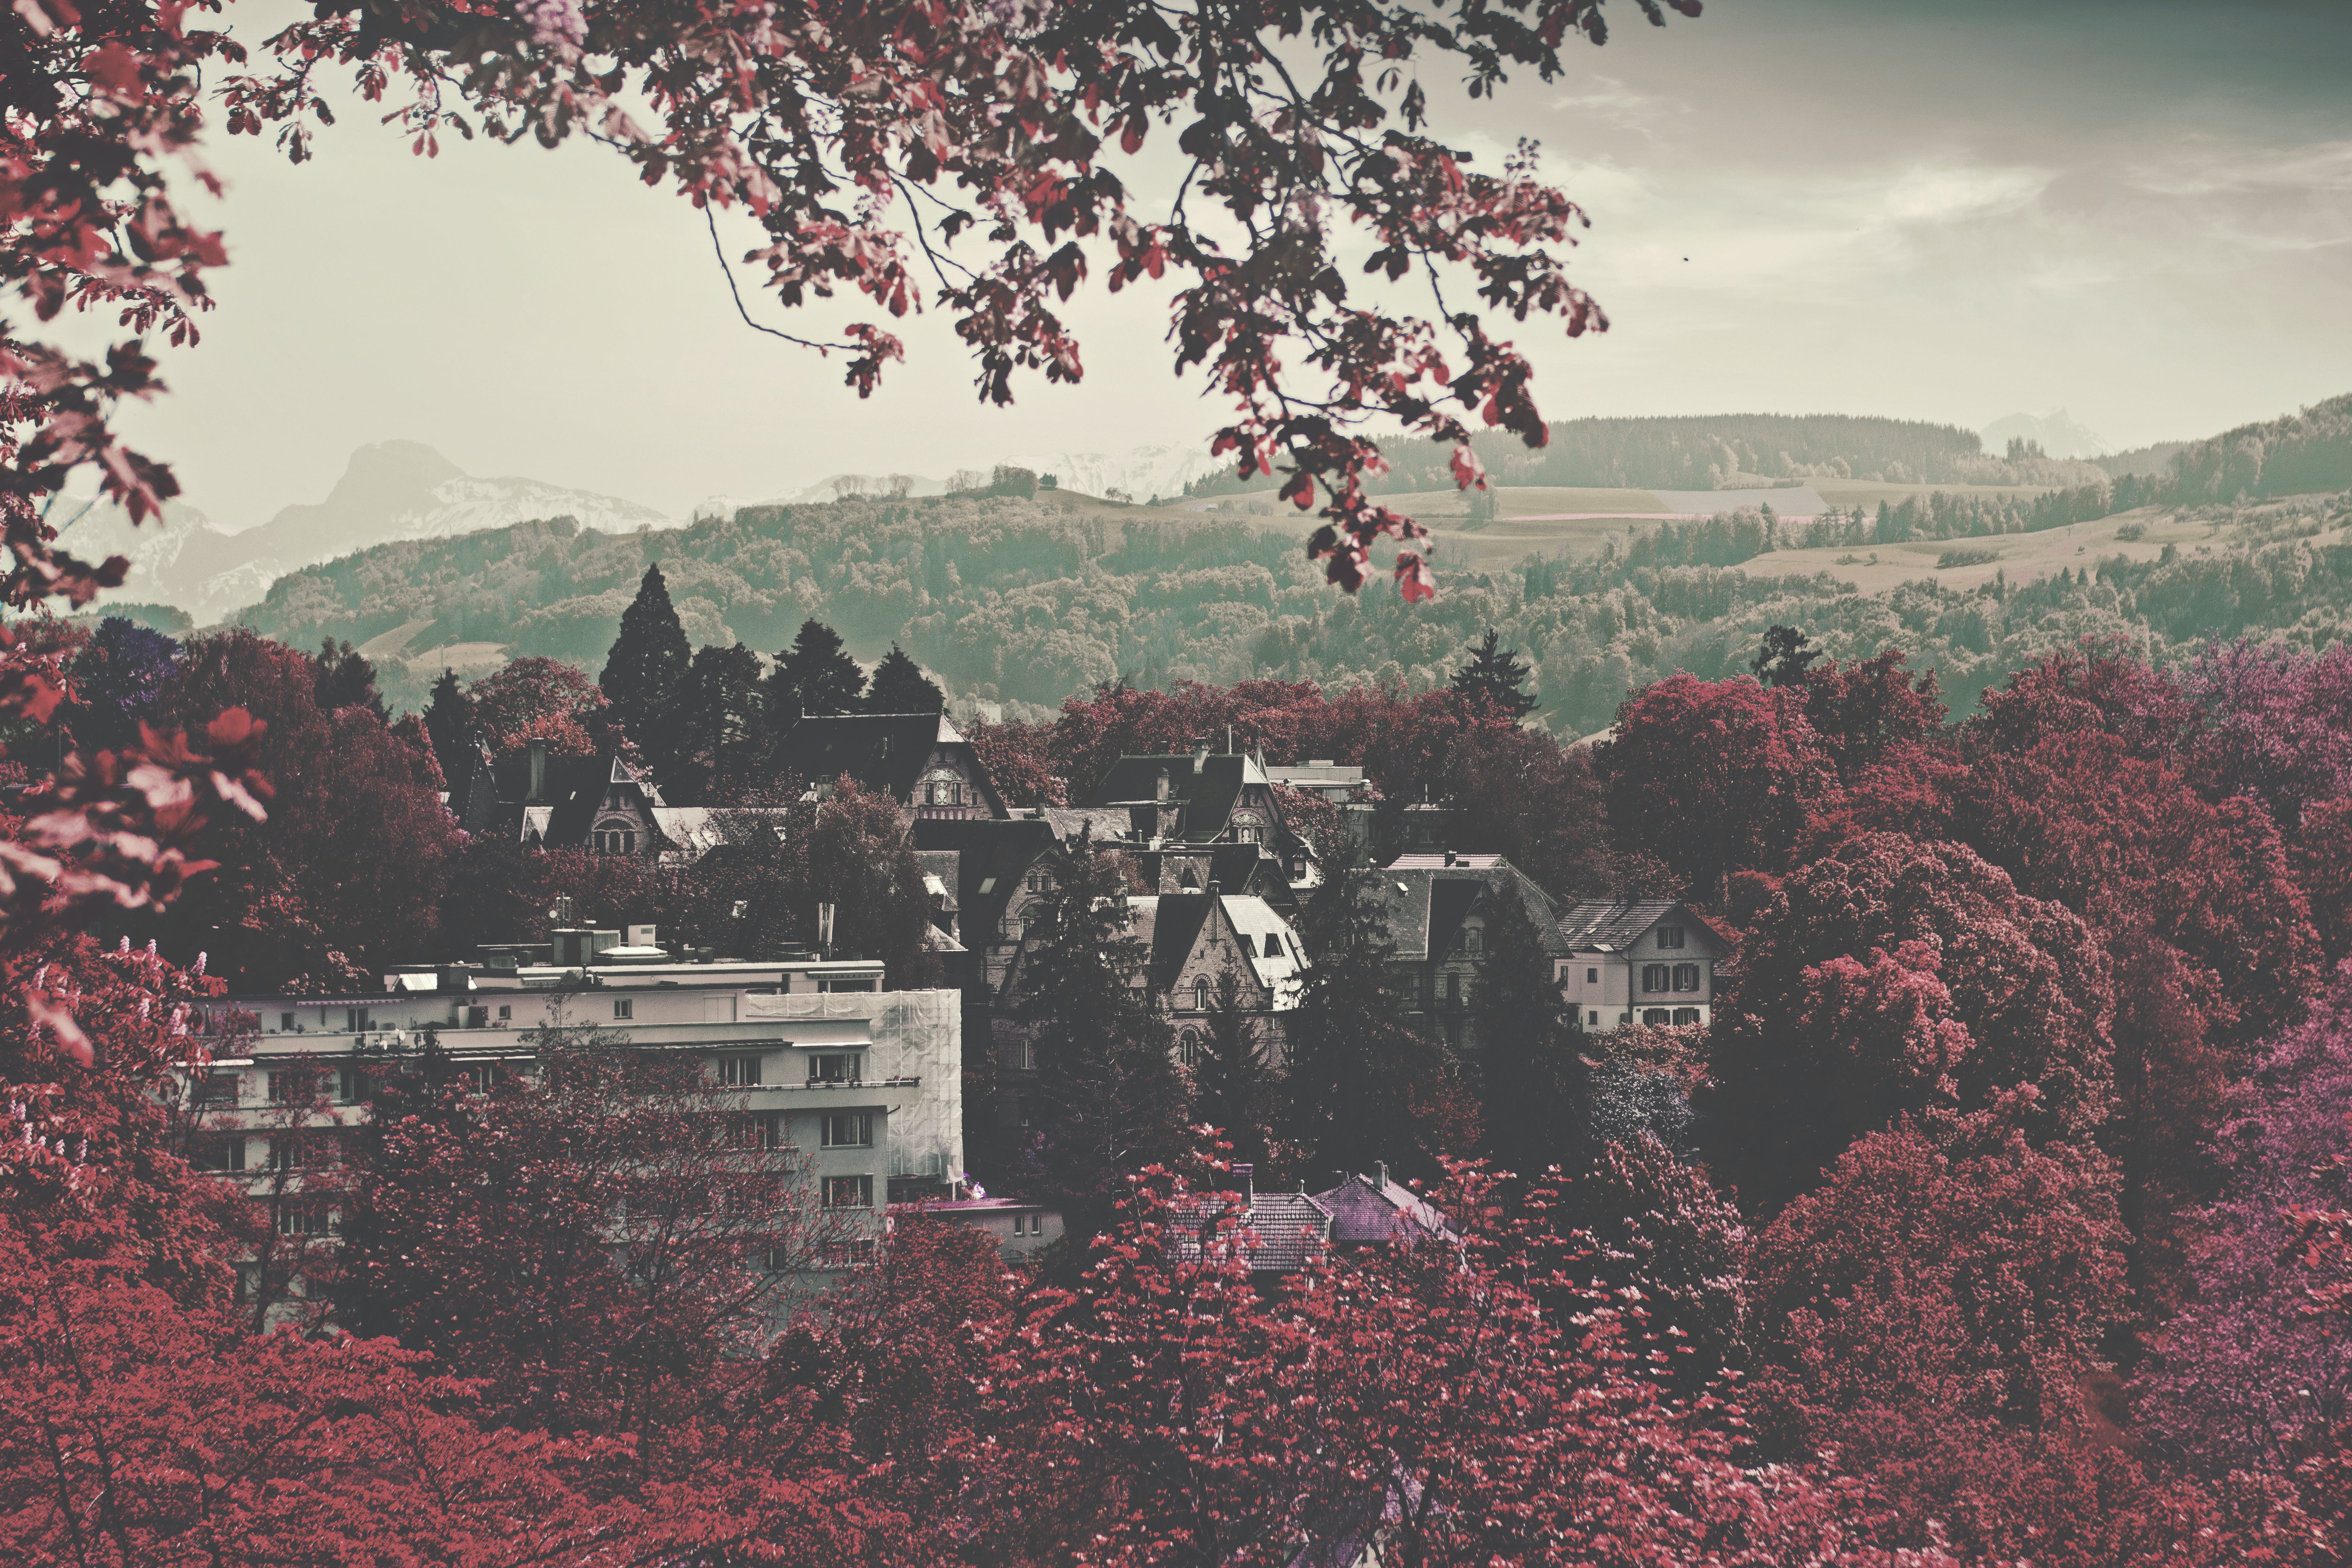 City Buildings Surrounded Maroon Leaved Forest during Daytime